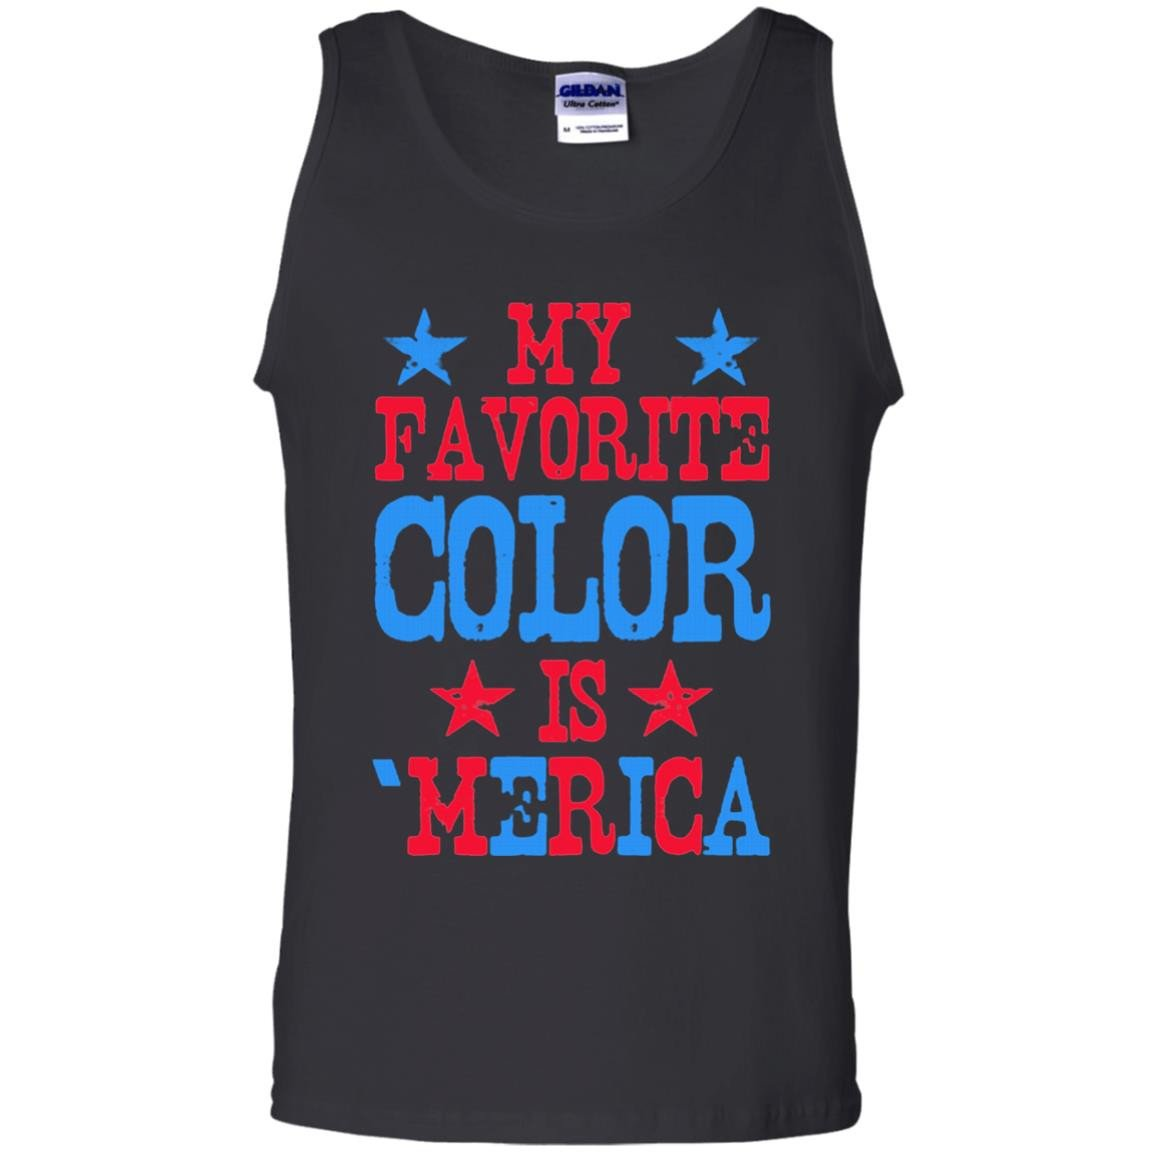 America Shirts MY FAVORITE COLOR IS 'MERICA! T-shirts Hoodies Sweatshirts